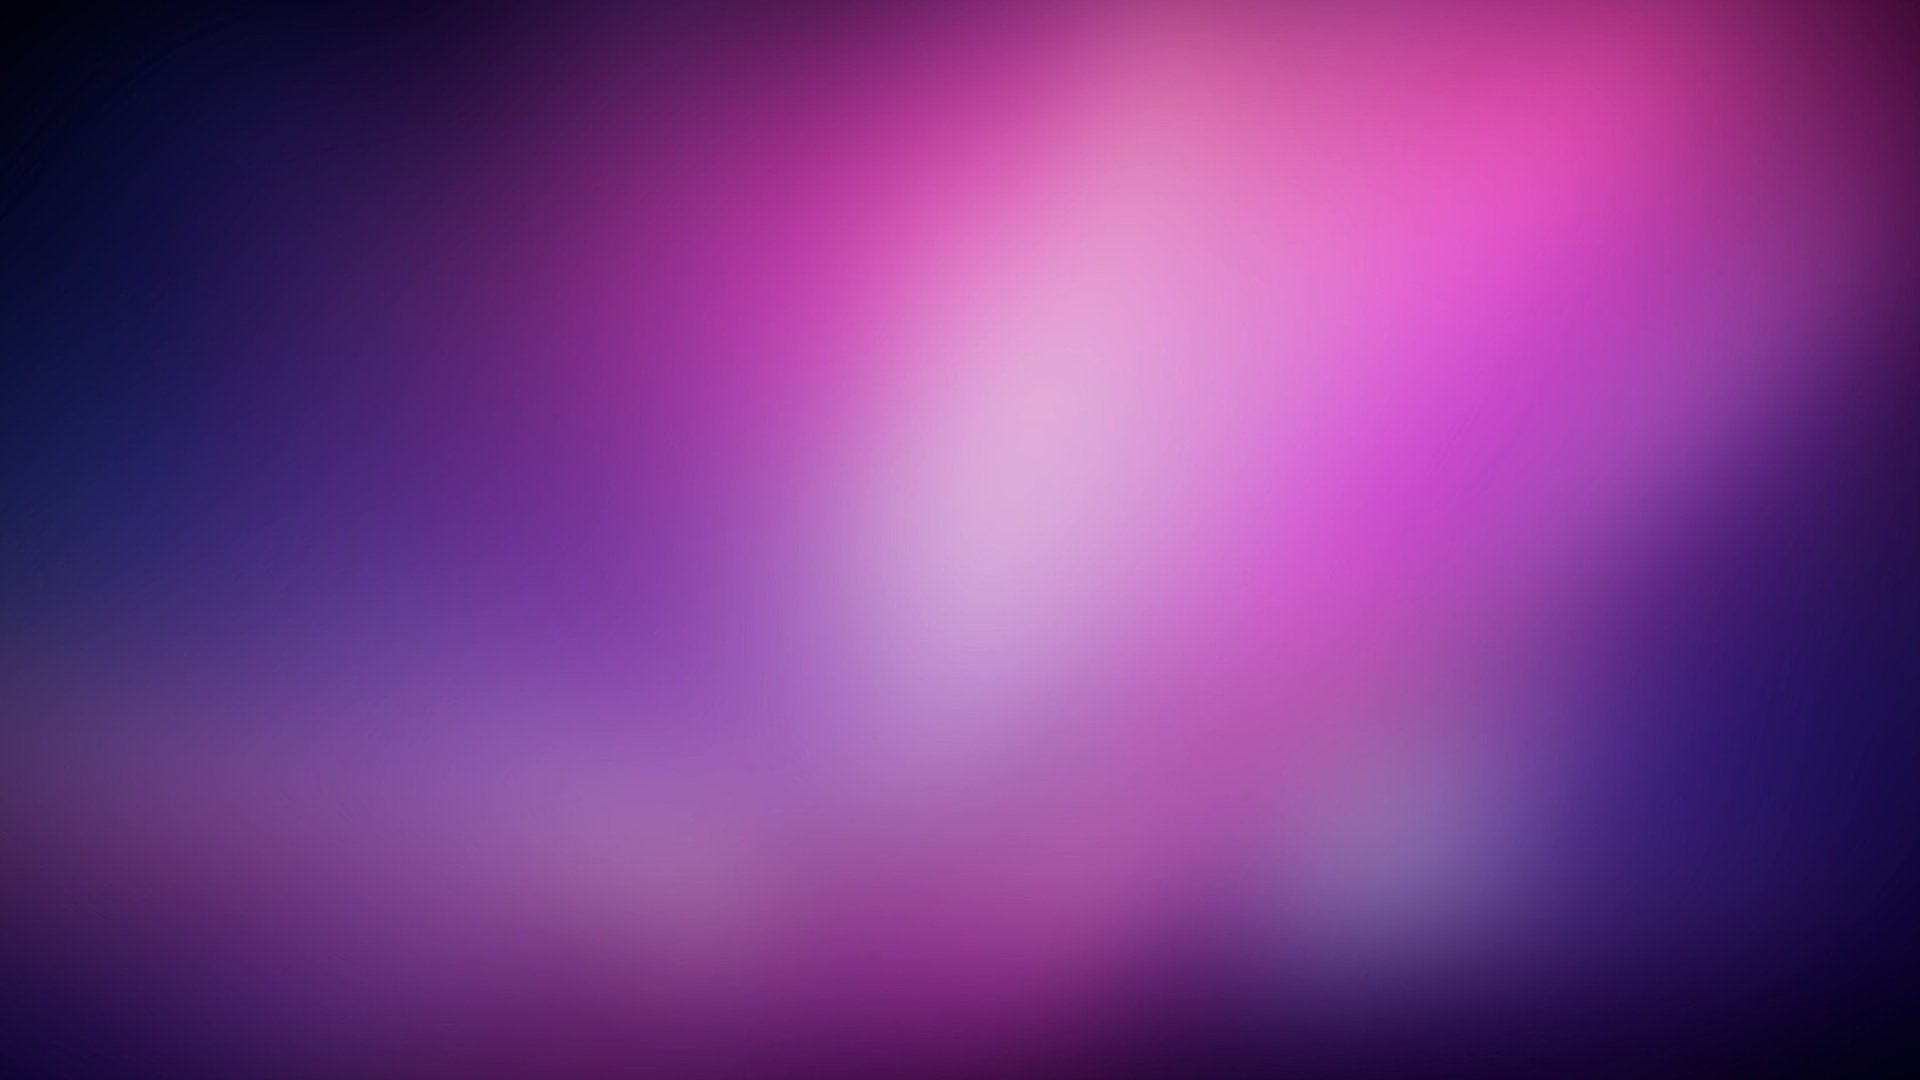 Free download Purple background ID:405405 full hd 1080p for desktop